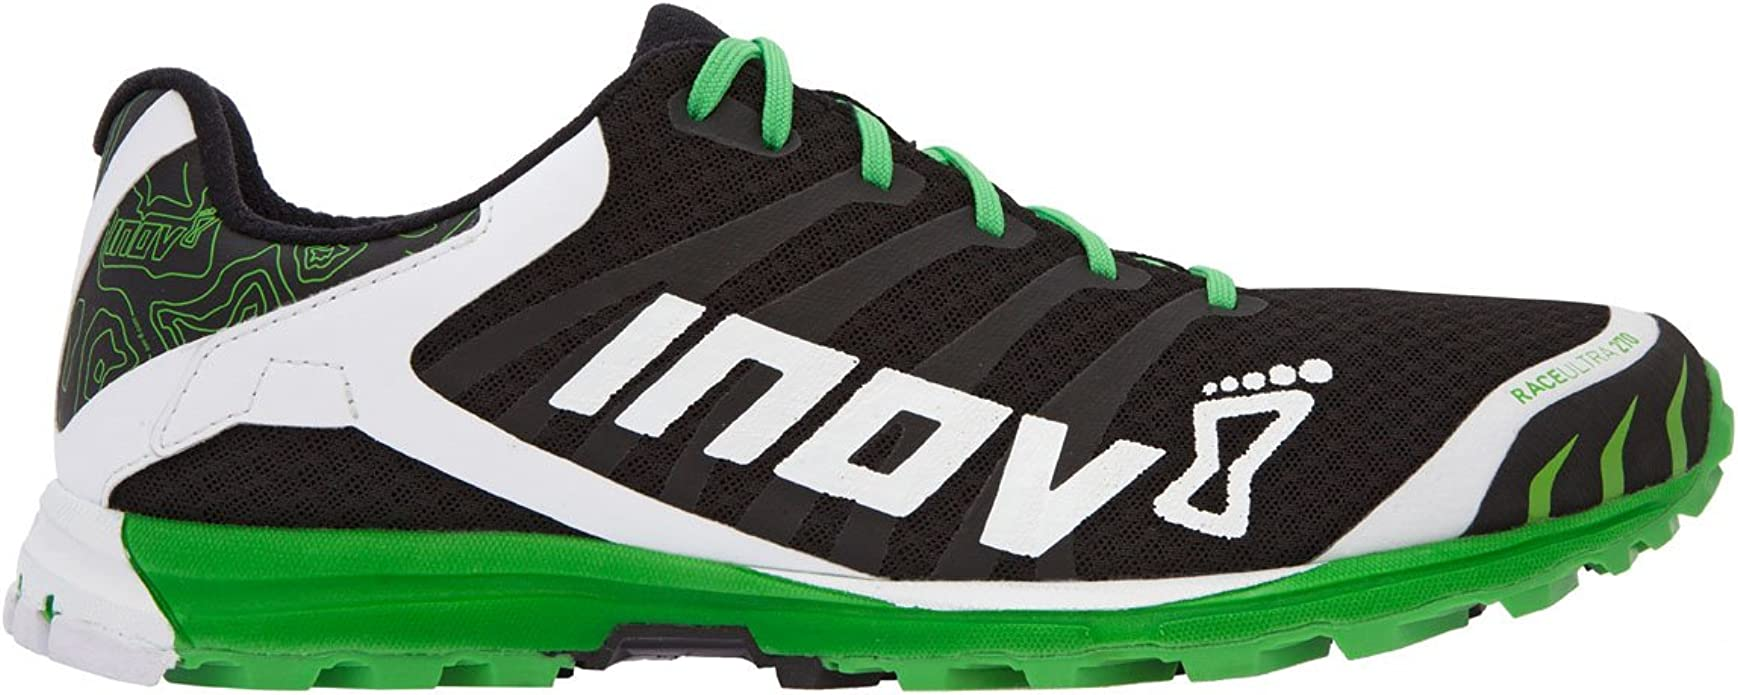 INOV8 Race Ultra 270 Zapatilla de Trail Running Caballero: Amazon.es: Zapatos y complementos